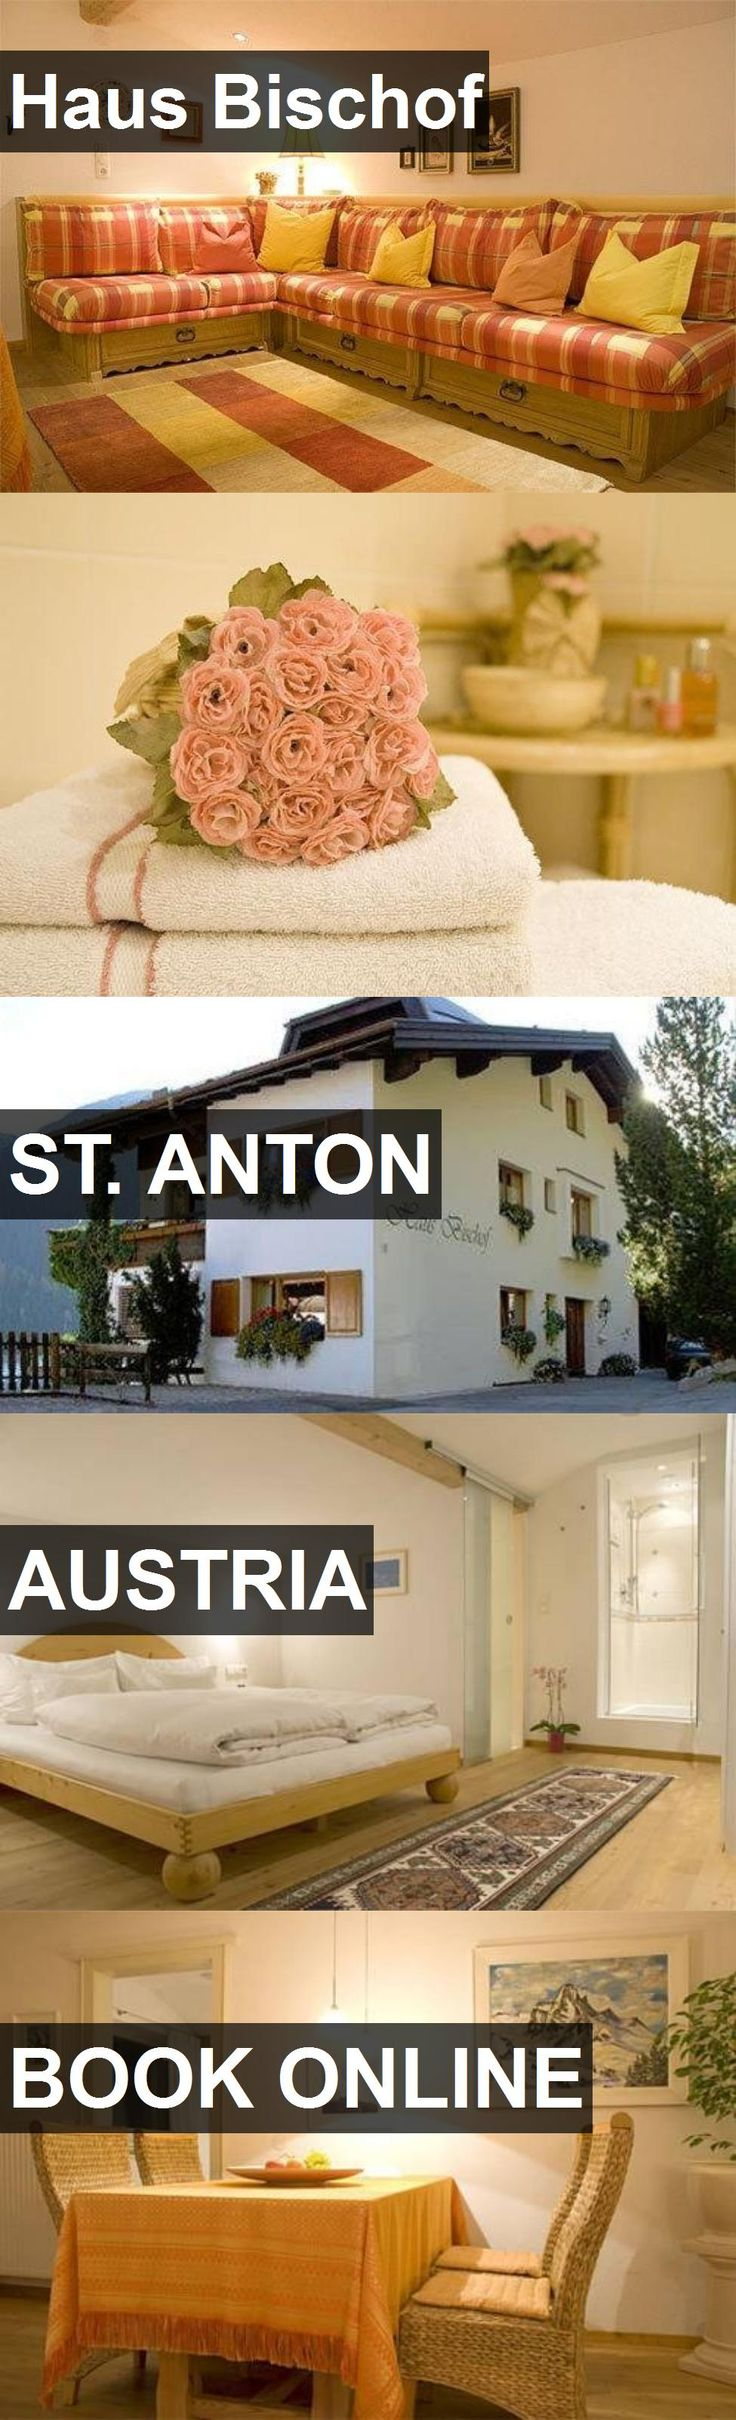 Hotel Haus Bischof in St. Anton, Austria. For more information, photos, reviews and best prices please follow the link. #Austria #St.Anton #travel #vacation #hotel